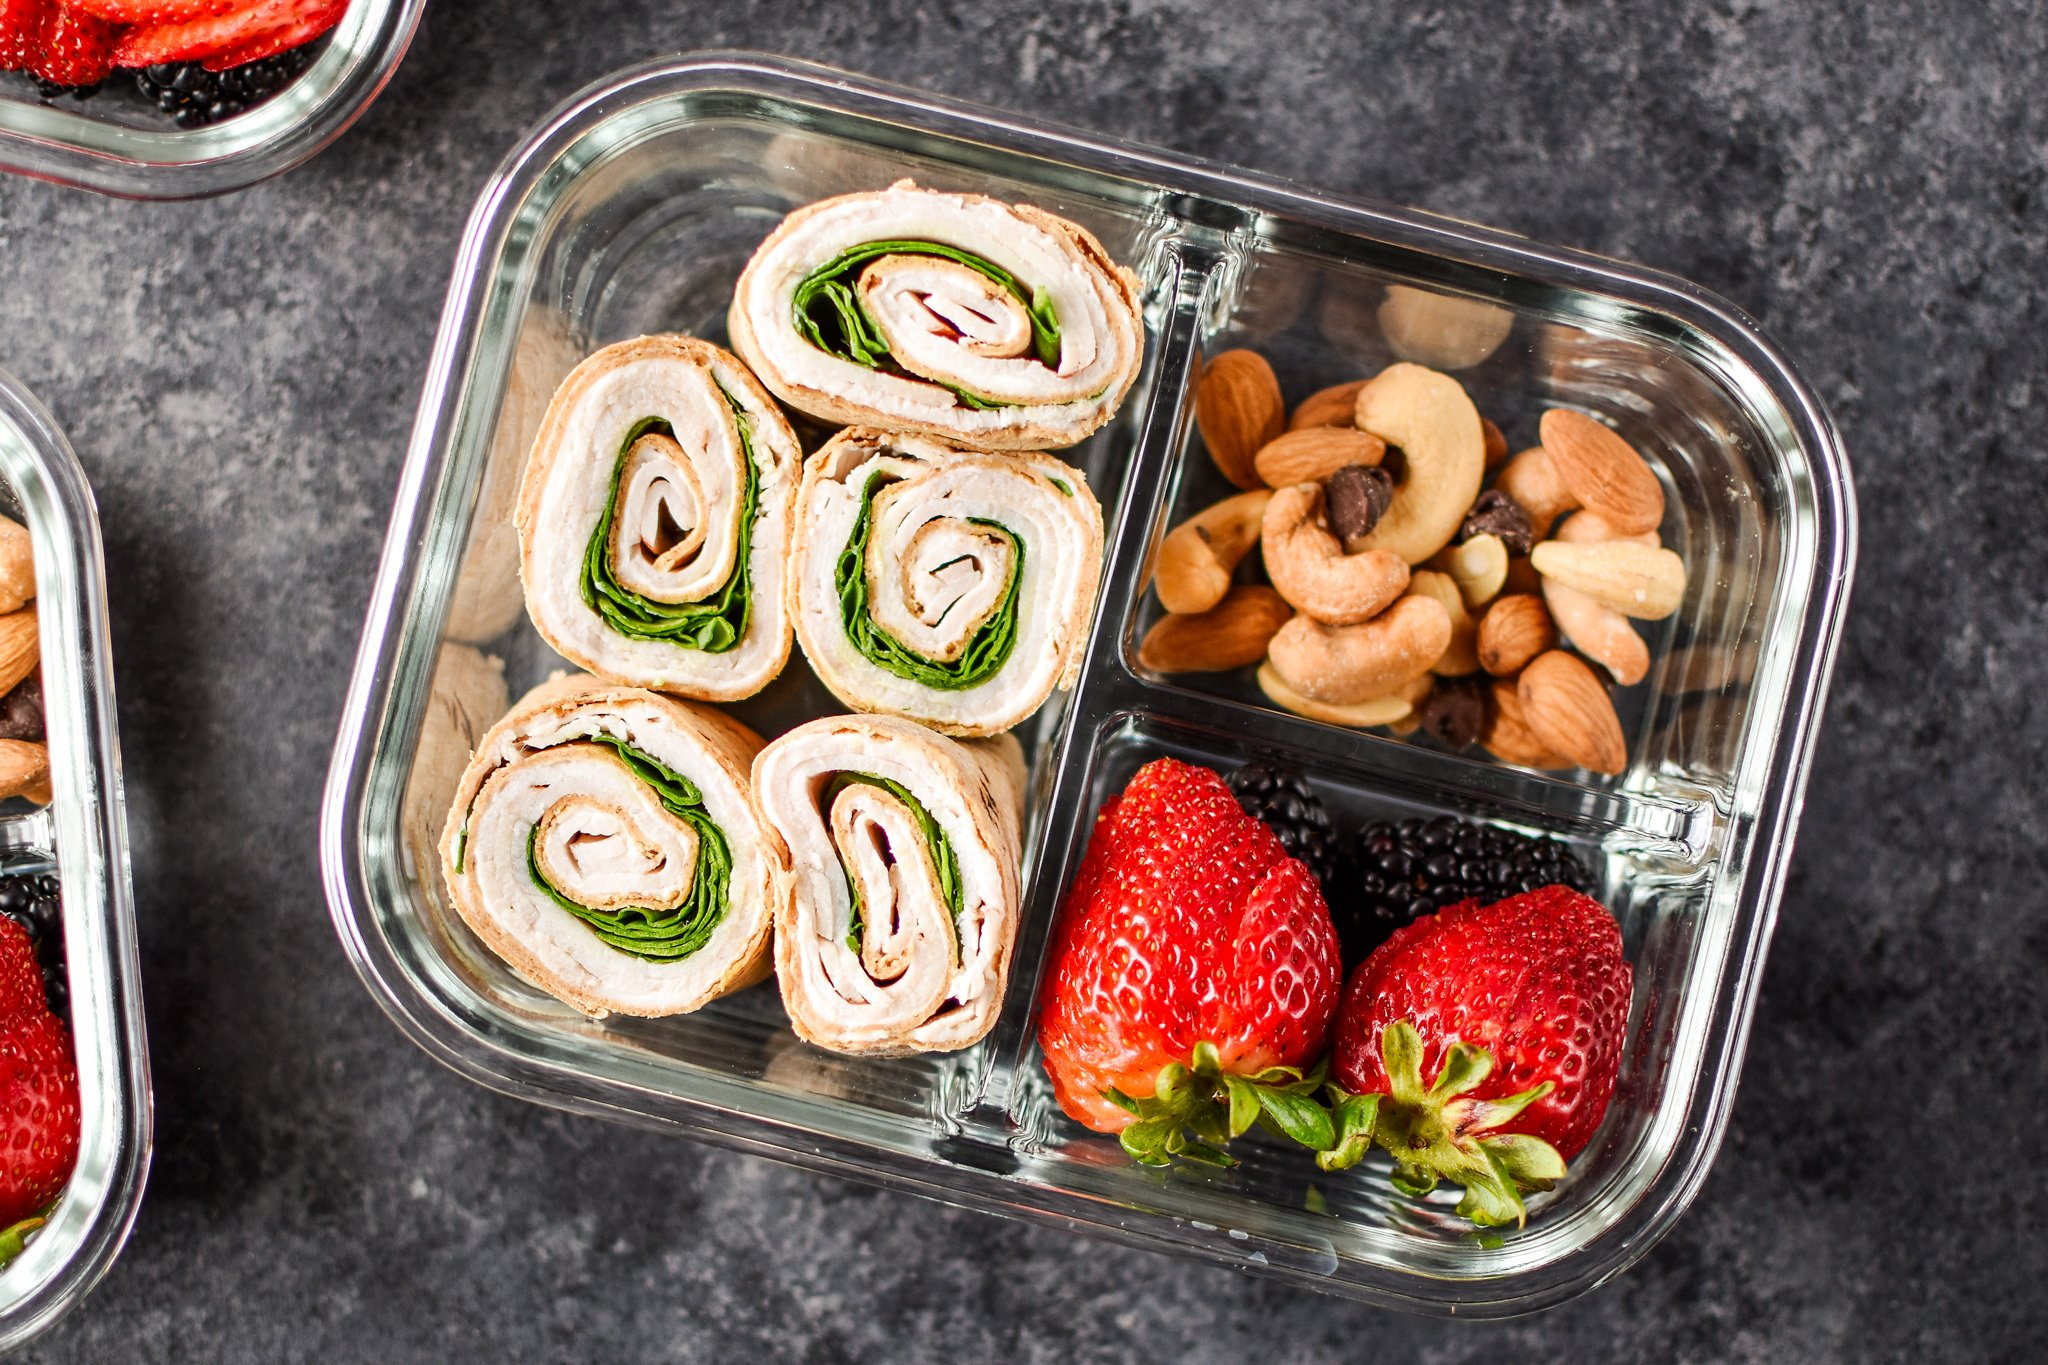 A turkey pinwheel meal prep with berries and nuts.